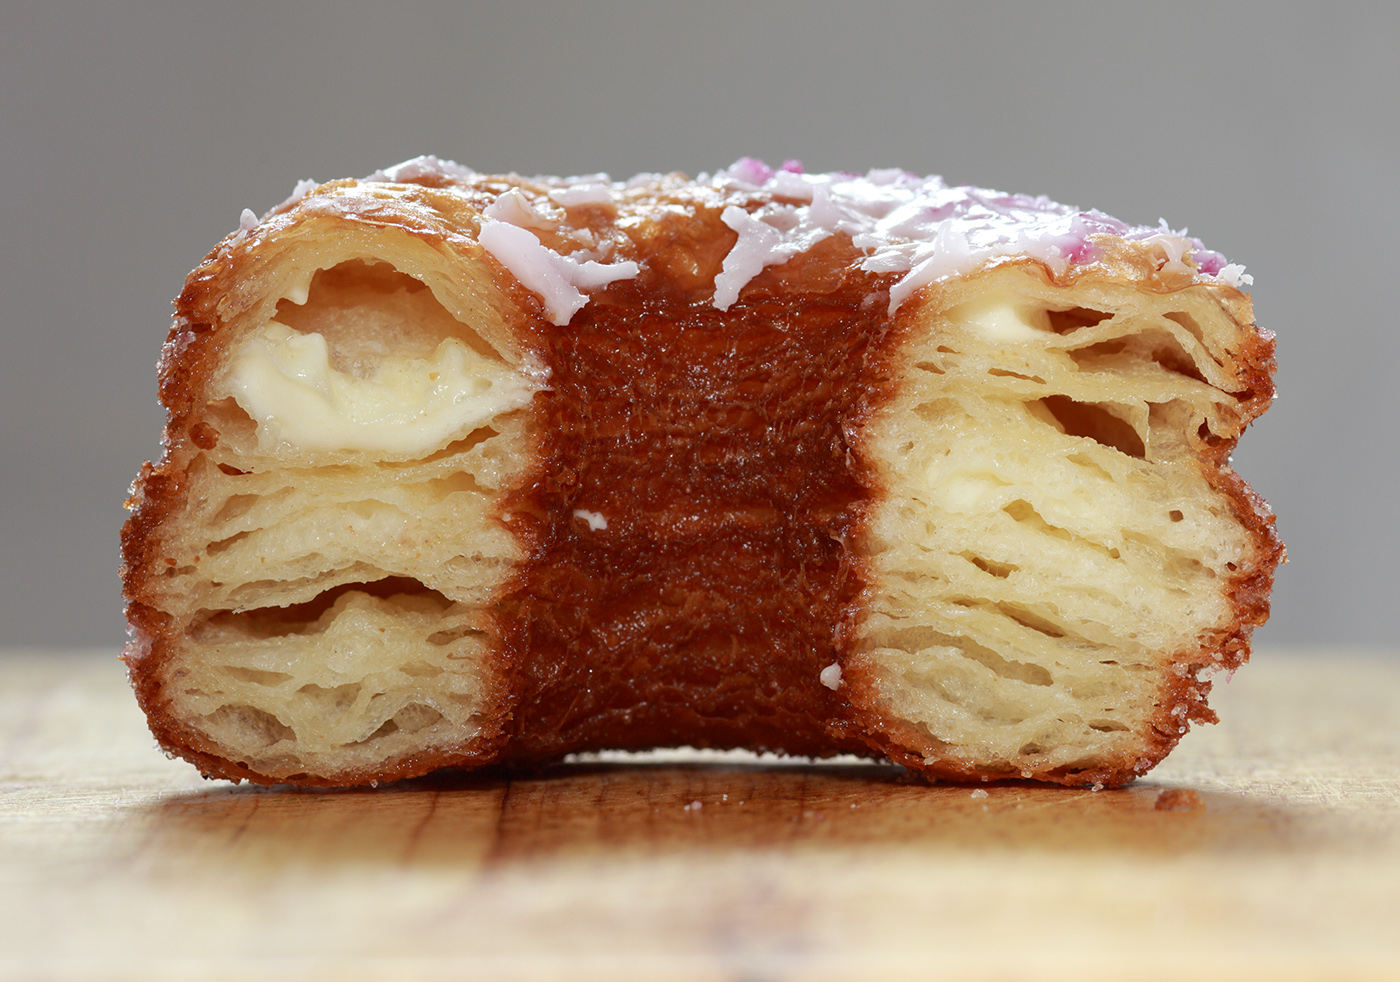 #FAD: The Cronut